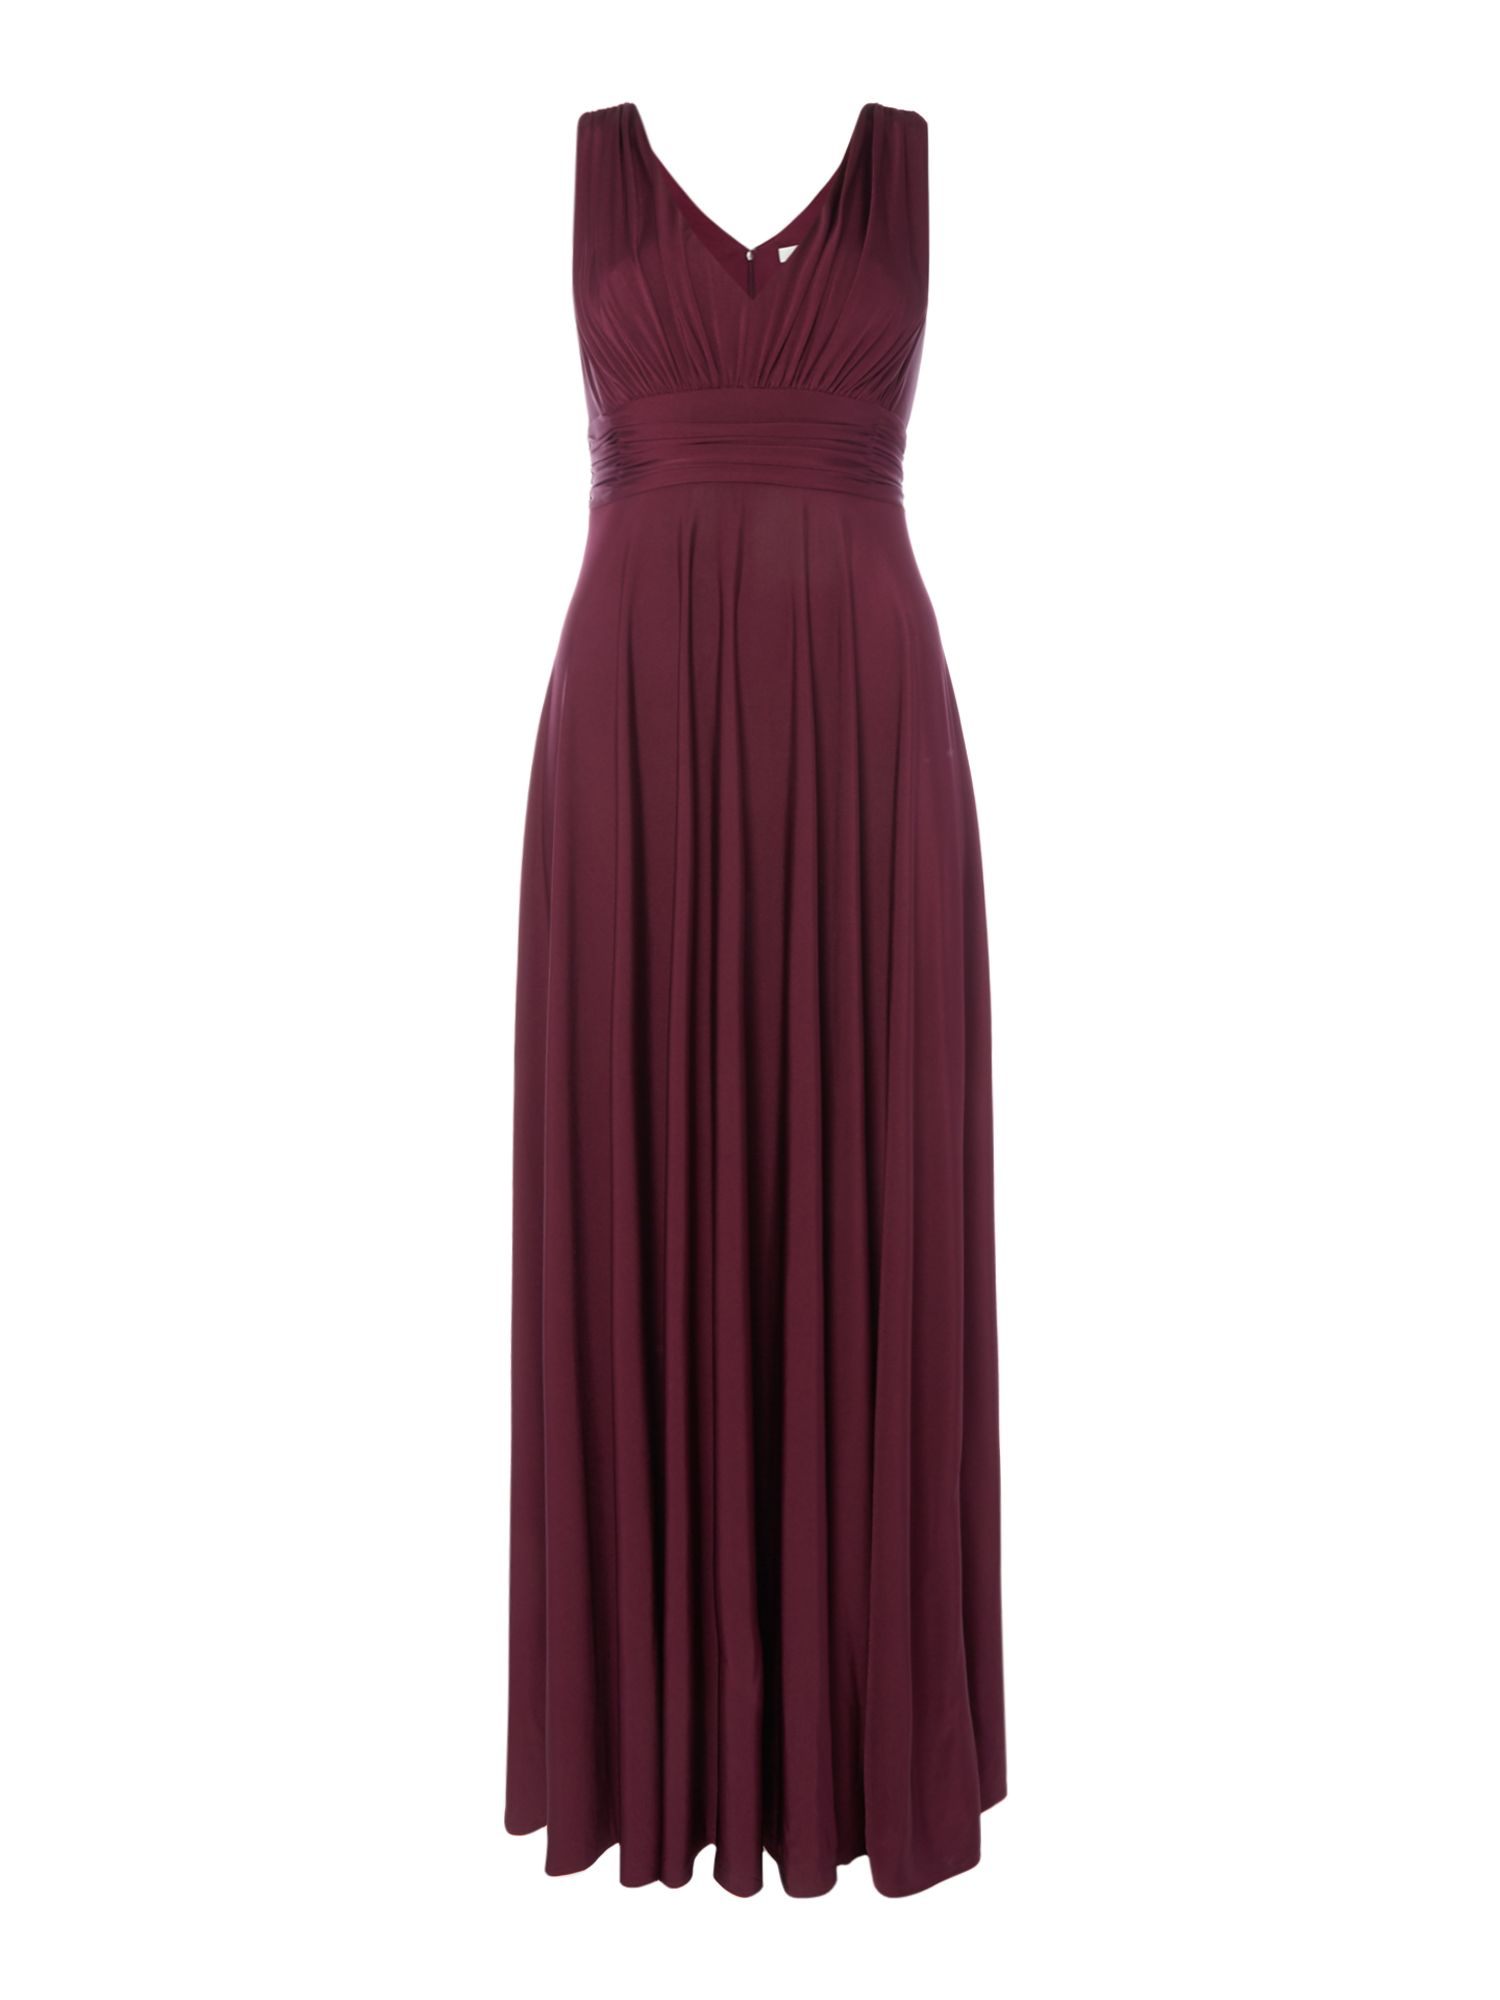 ISSA Olivia Deep V Maxi Dress, Purple